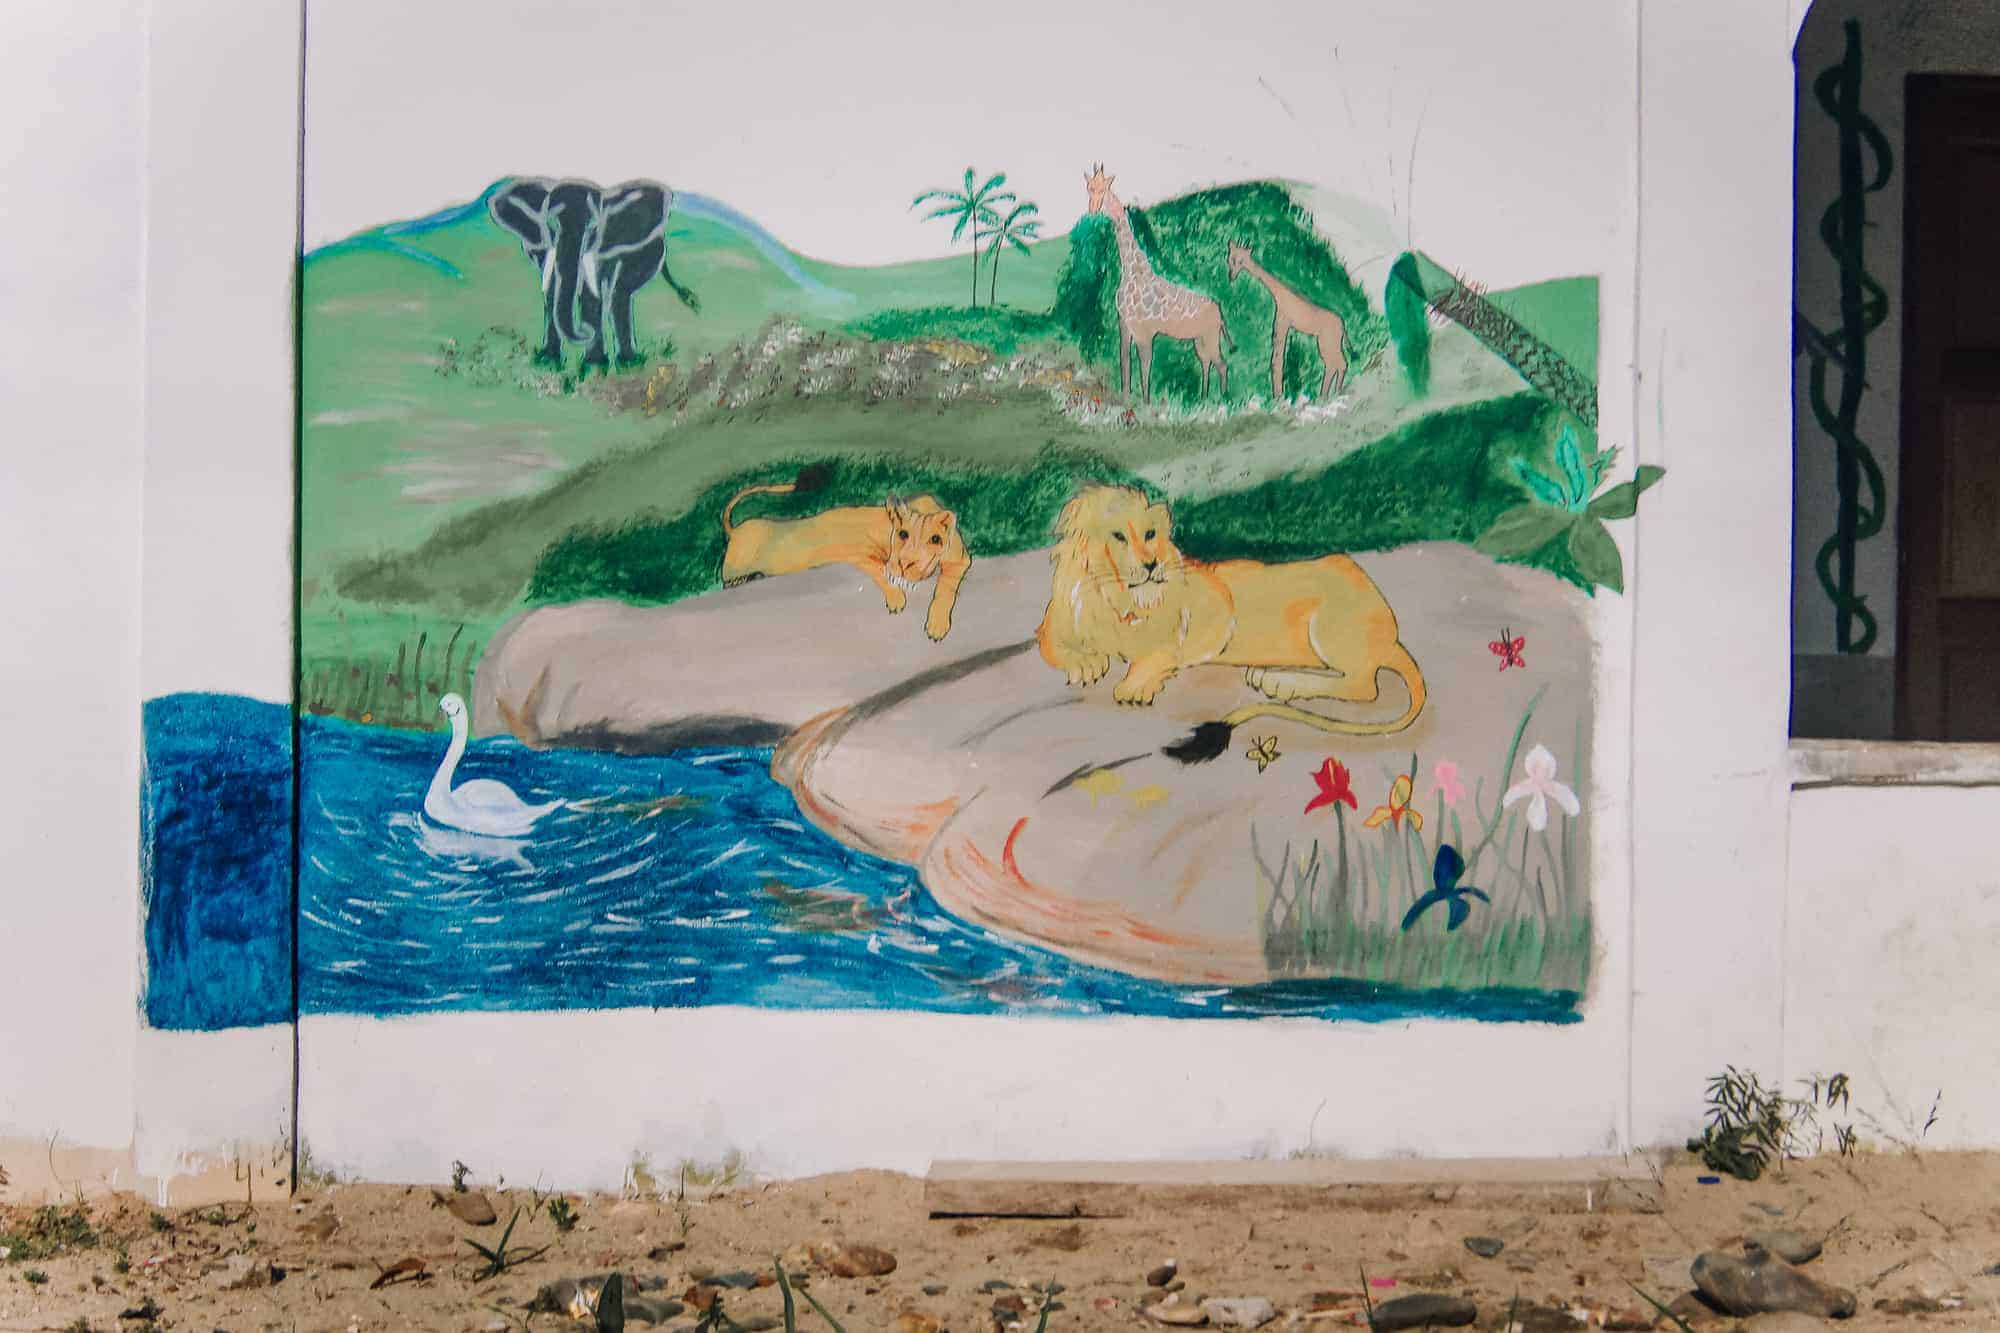 Wall painting of animals